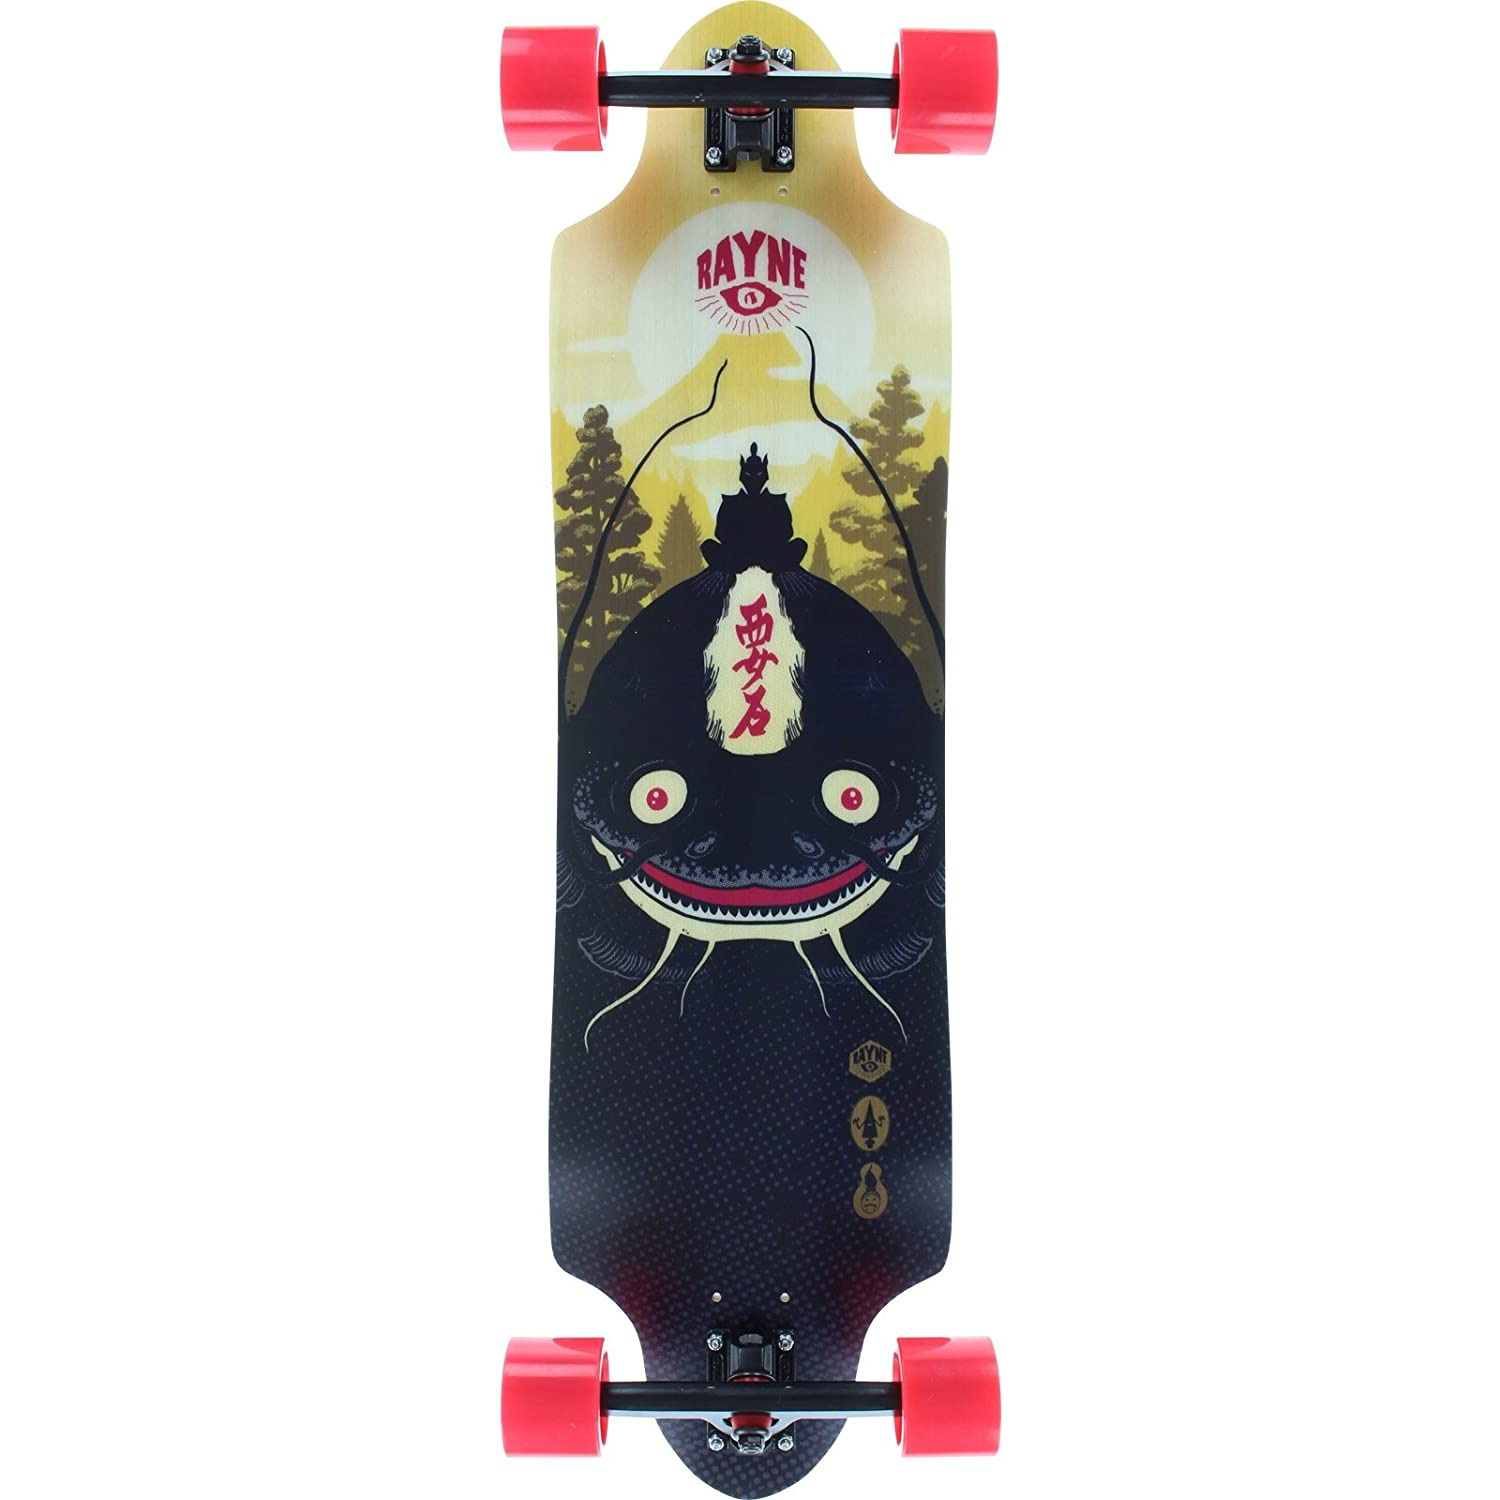 全ての Rayne Savage x Complete by Savage Longboard Skateboard - 10 x 37 by Rayne B00OB4RED2, 柴田町:e5488ff6 --- a0267596.xsph.ru